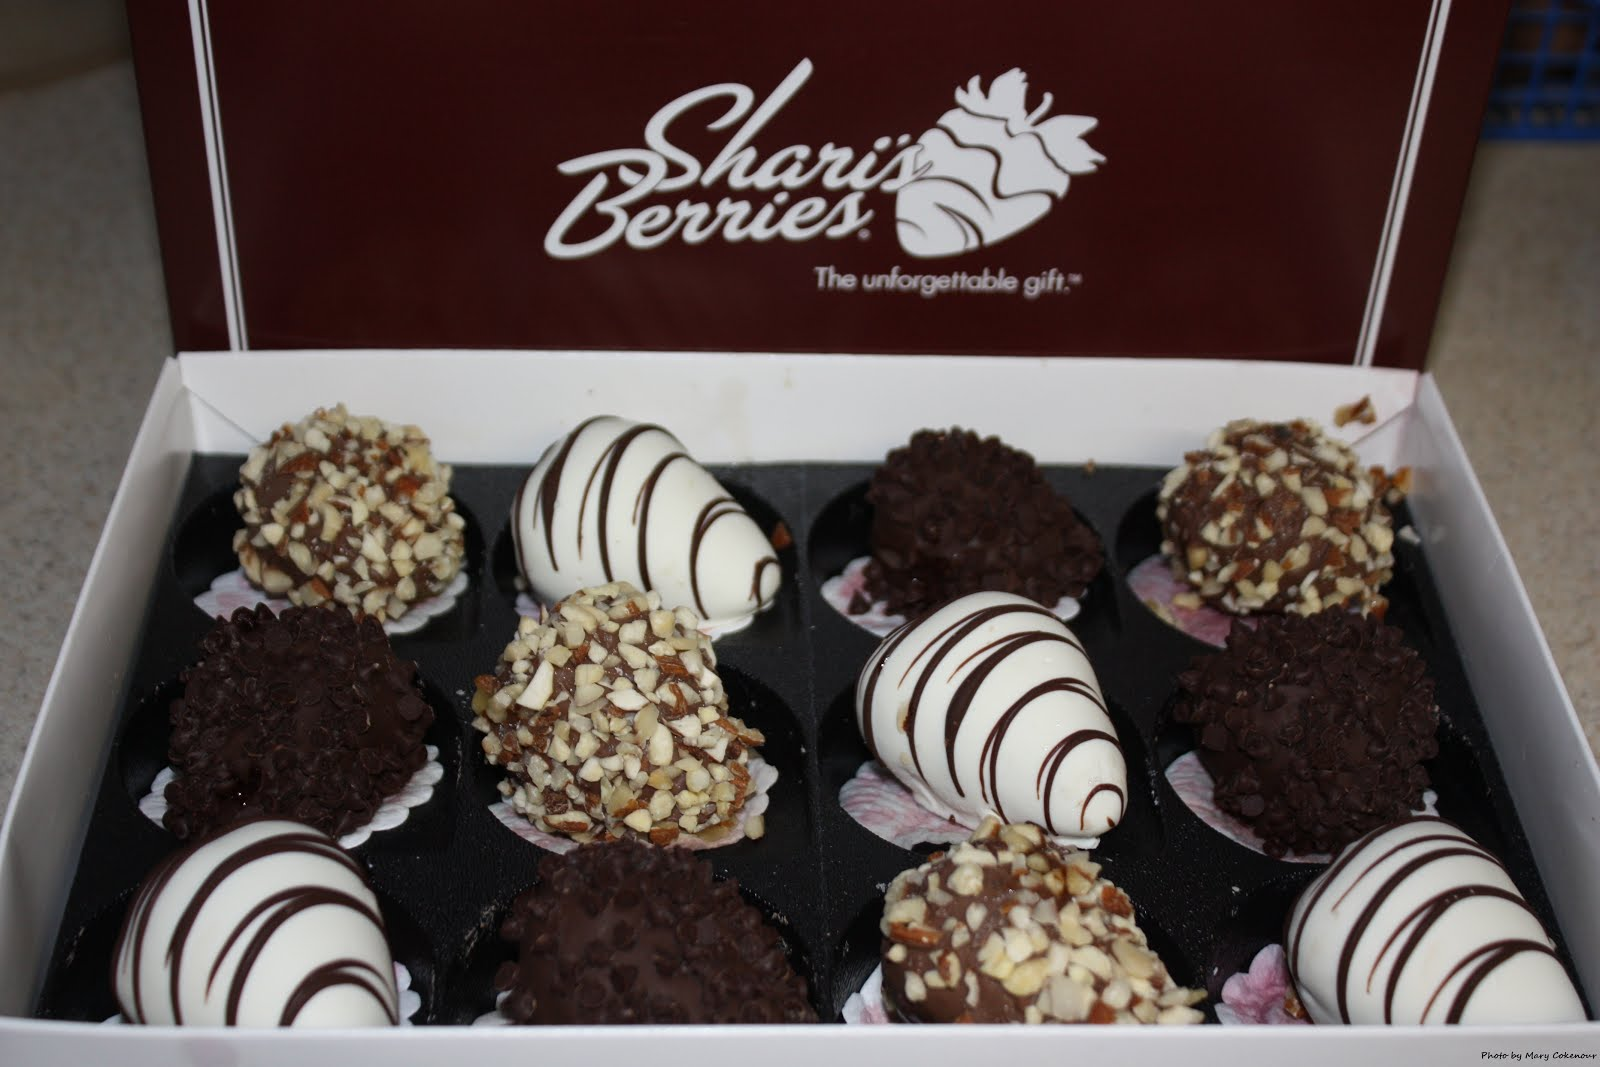 Food Adventures of a Comfort Cook: Spoil Yourself with Shari's Berries